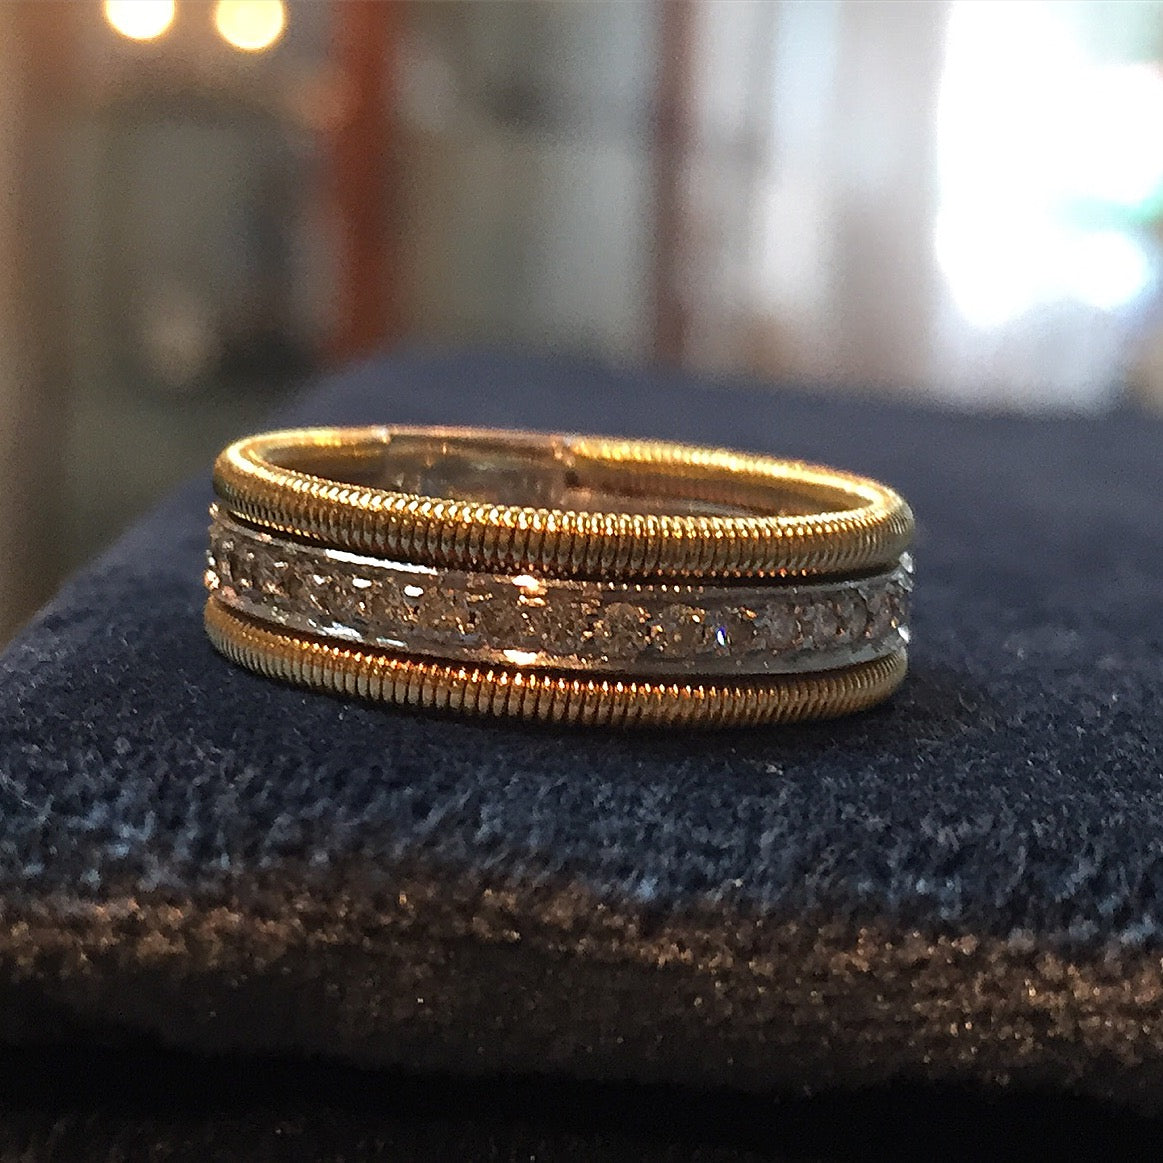 The Gold Coil Ring